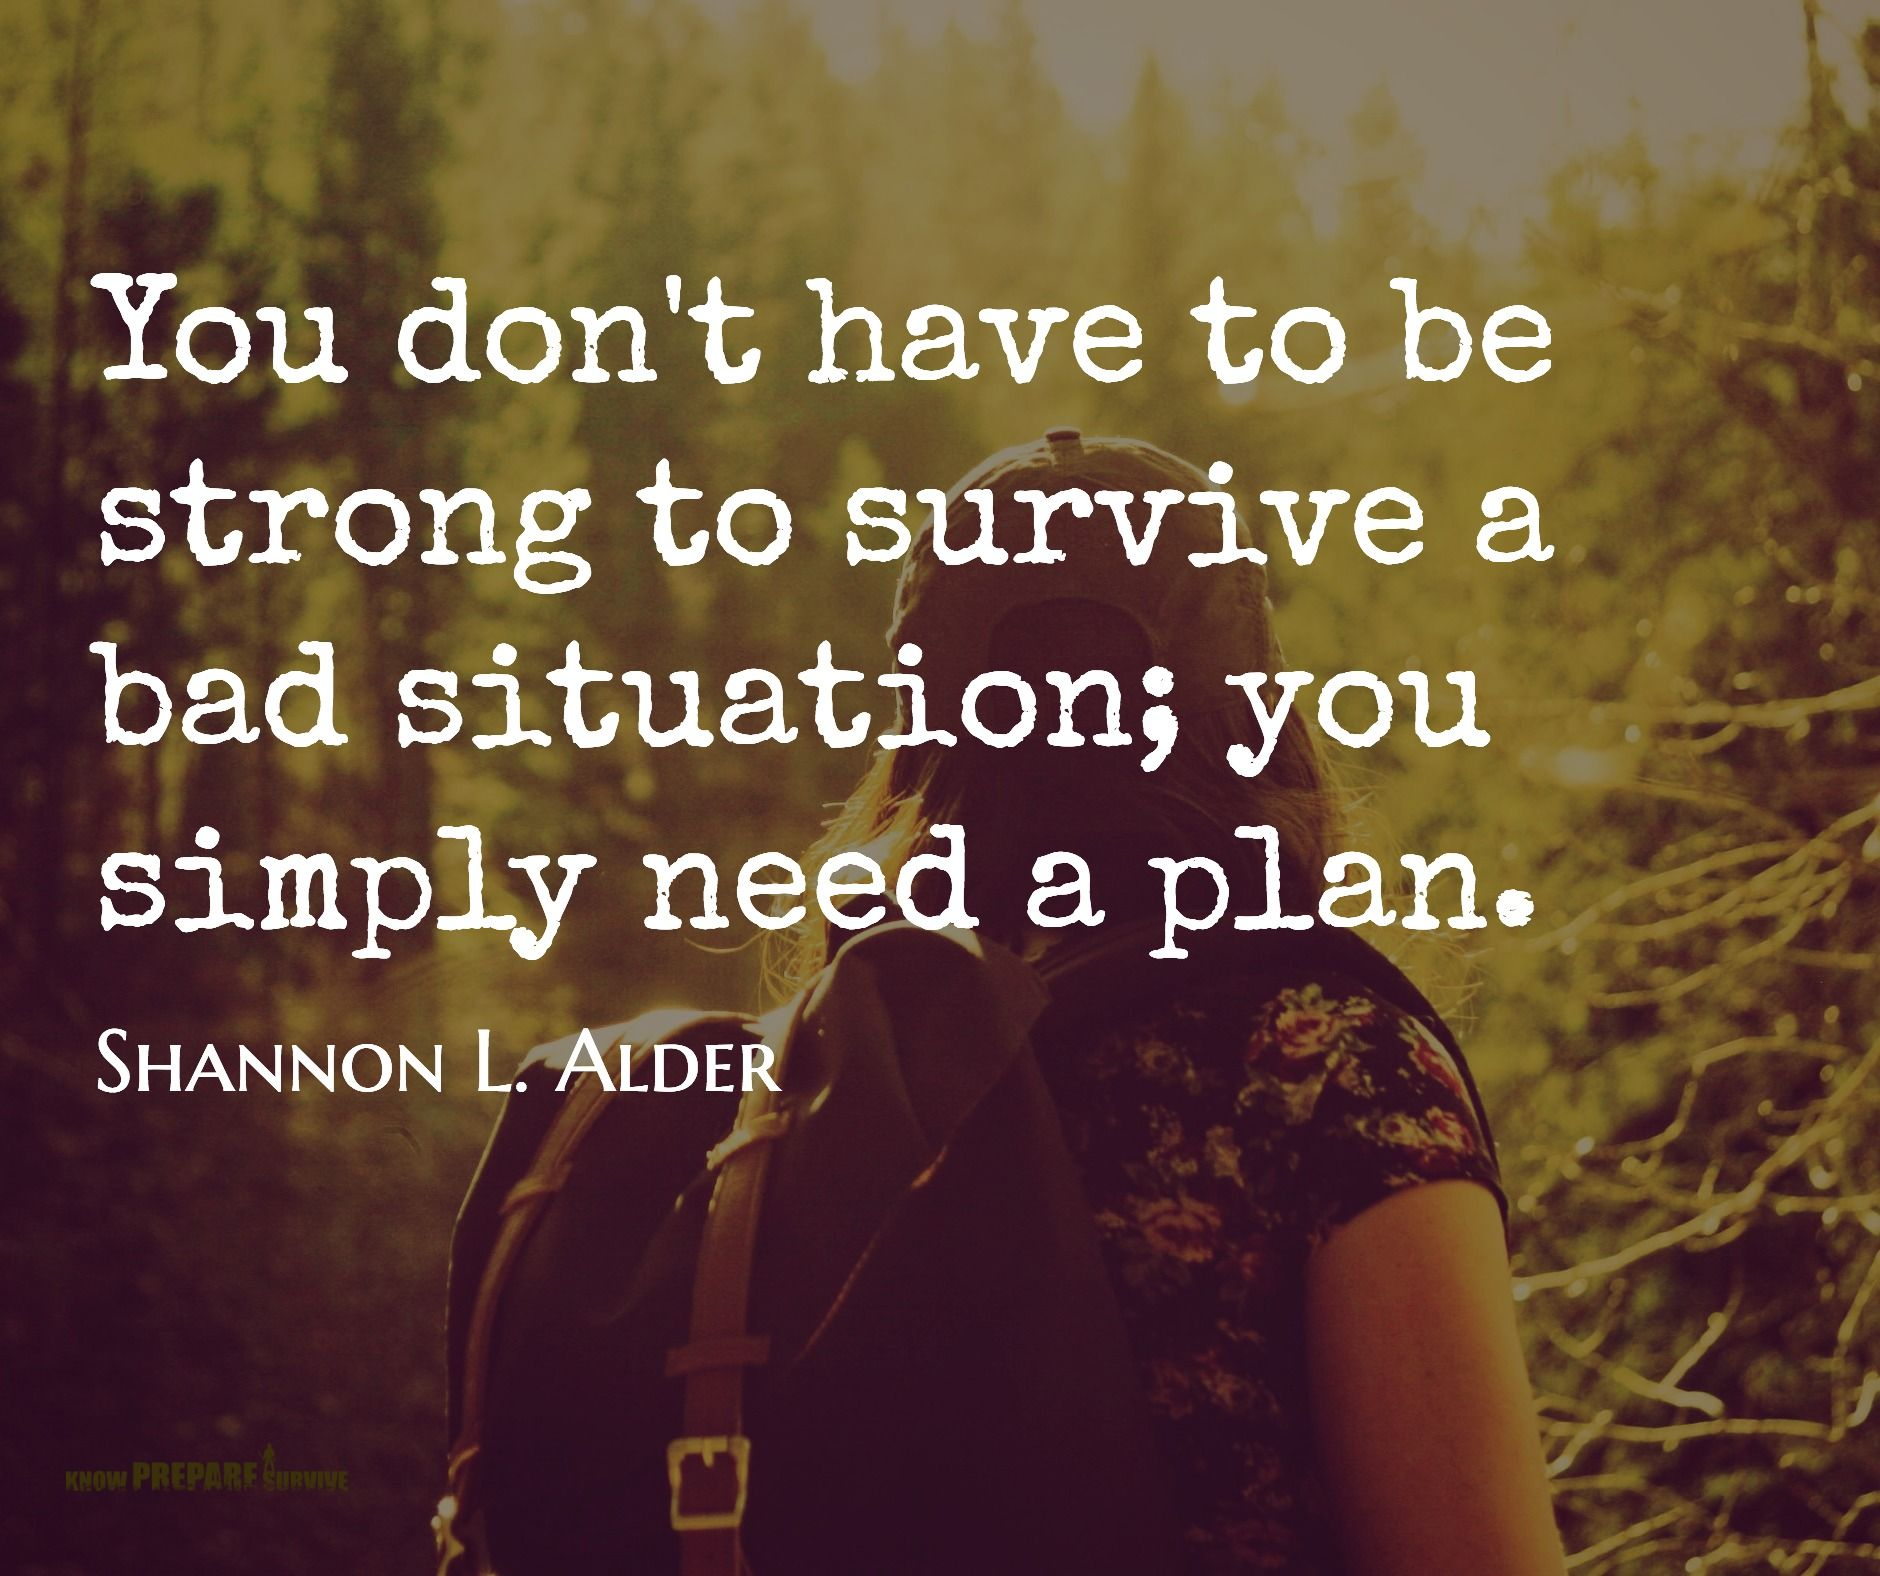 Shannon L. Alder / You don't have to be strong to survive a bad situation; you simply need a plan.